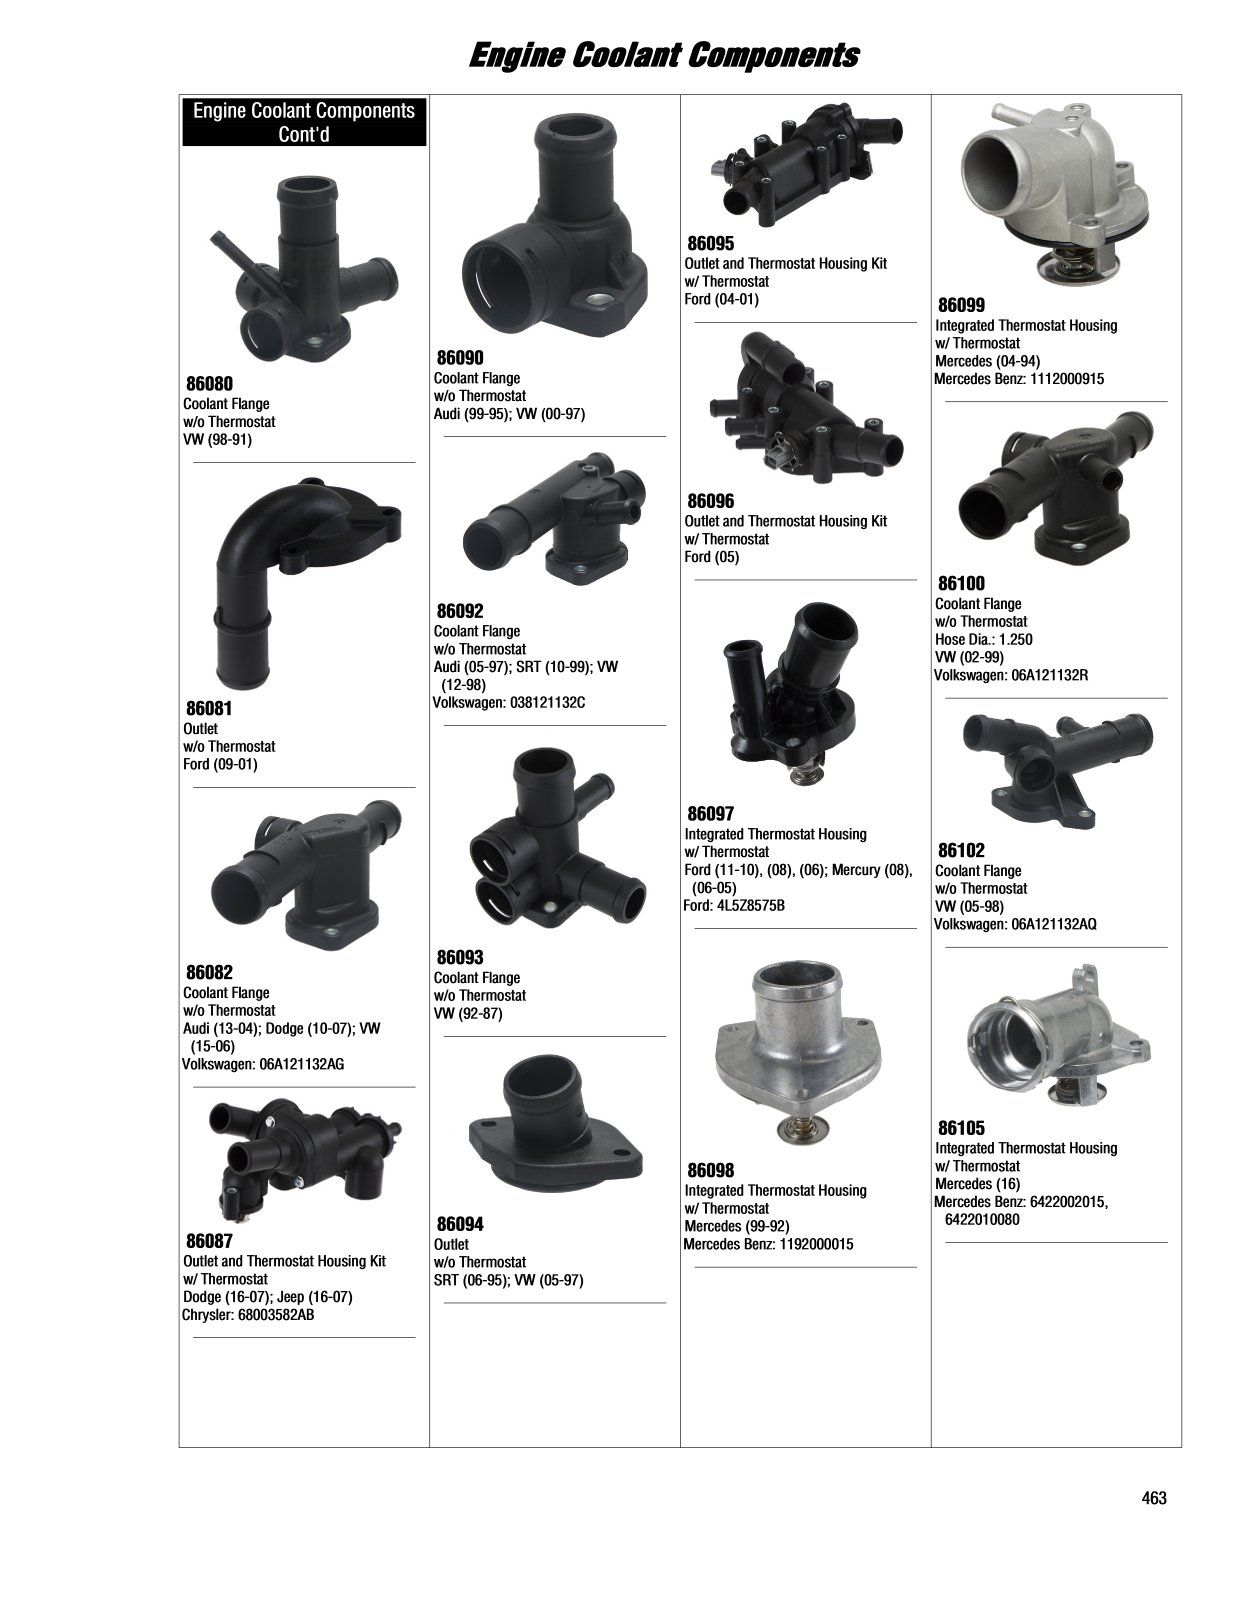 2017 Illustrated Guide Page 463 Engine Coolant Components Vw